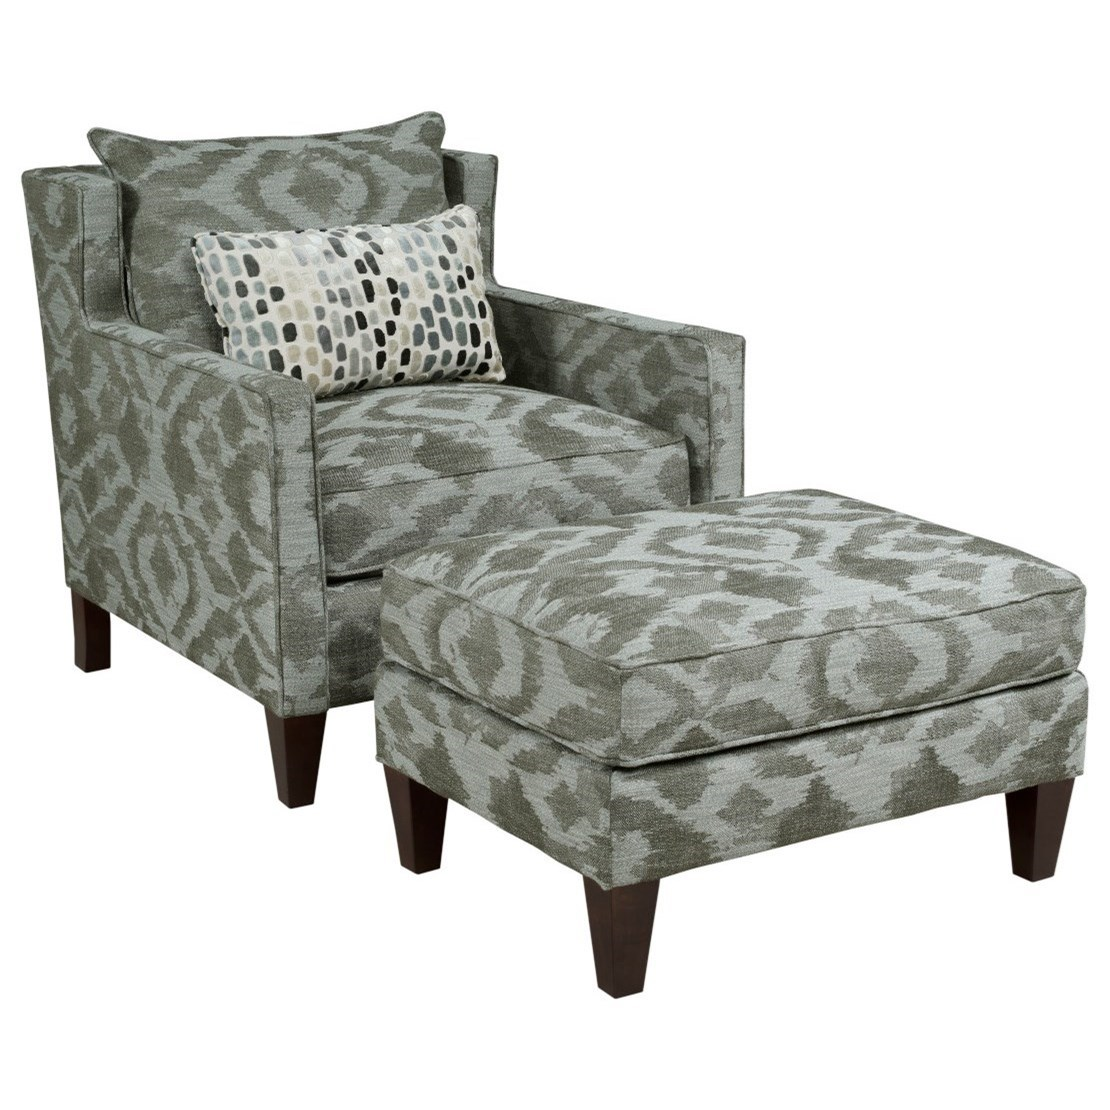 Alta Chair & Ottoman Set by Kincaid Furniture at Lindy's Furniture Company